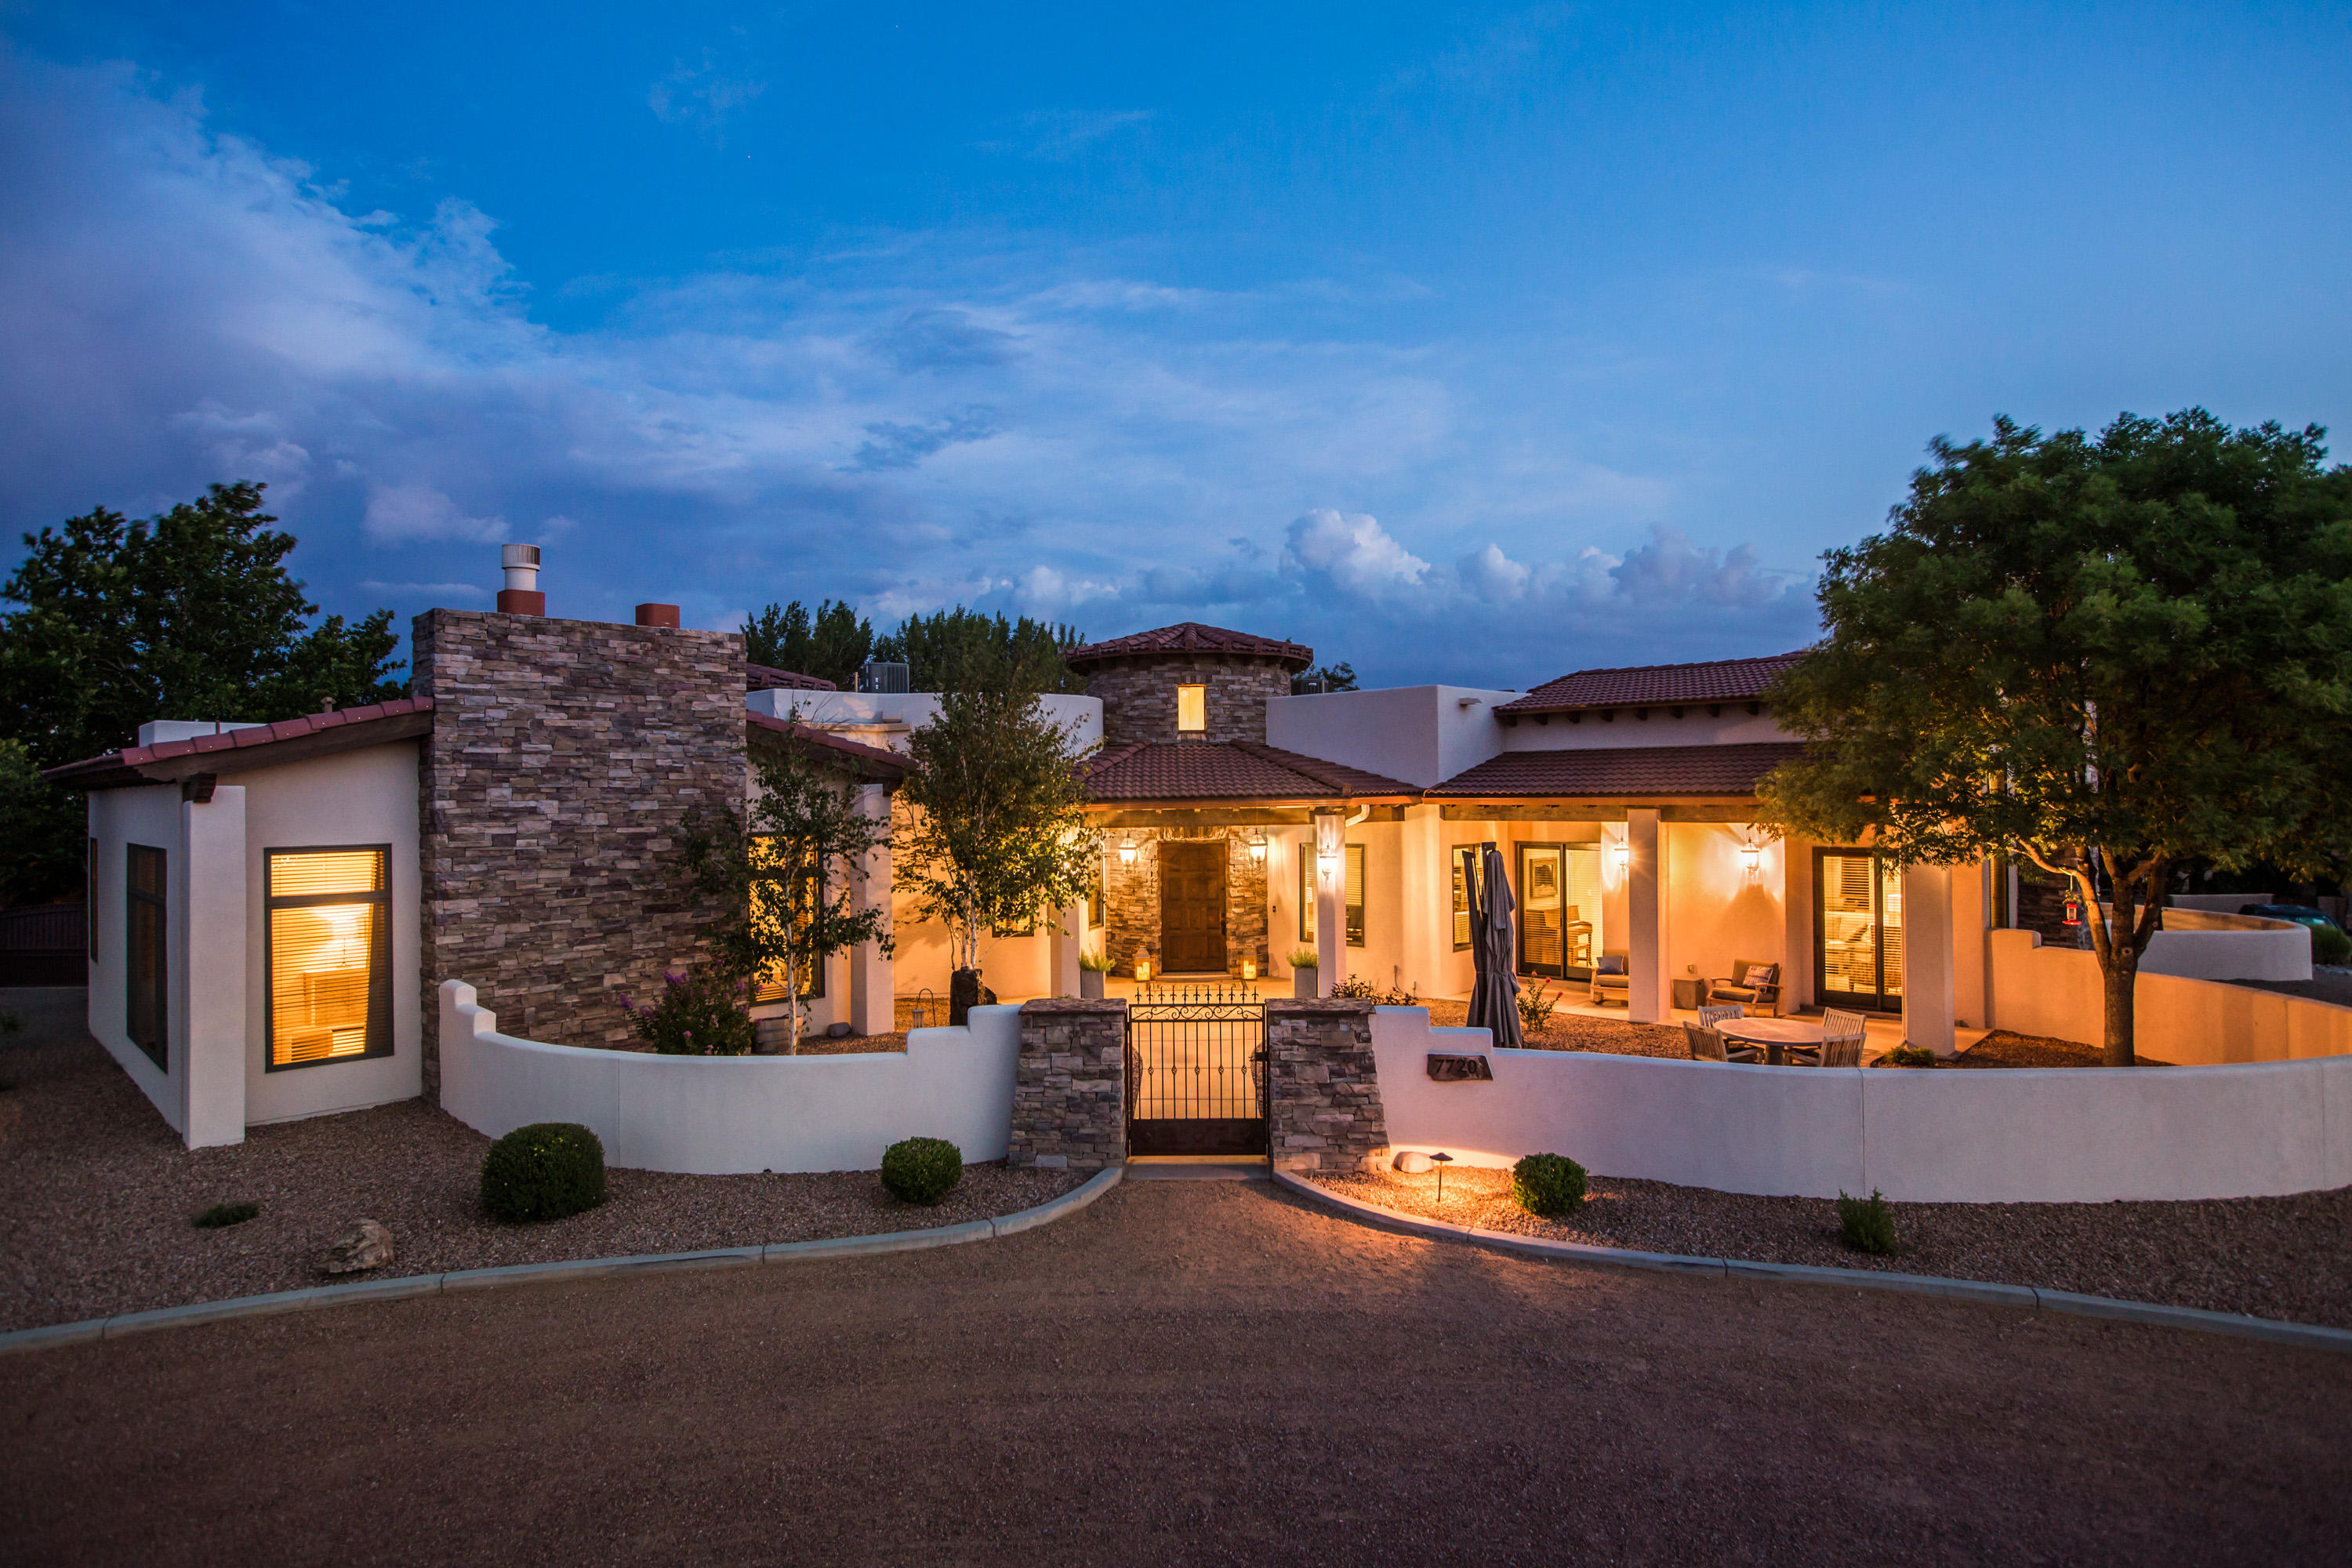 Incredible opportunity for the discerning buyer who desires views and privacy on arguably the most desired street in Albuquerque. Enjoy the beauty of the setting nestled adjacent to the lands of the Pueblo of Sandia, and watch the buffalo roam from your front yard. Beautiful vistas of the Sandia Mountains, the city lights, and events such as the Balloon Fiesta and 4th of July fireworks can be enjoyed from the living areas, master suite, and outdoor living spaces. Beautiful attention to detail define this incredible custom built home. Inspired by the architecture of Santa Barbara, this home is beautifully appointed with high end finishes and beautiful design. Backyard is an oasis with lush landscaping, a sparkling pool w/slide, hot tub, outdoor shower, and great outdoor living spaces!